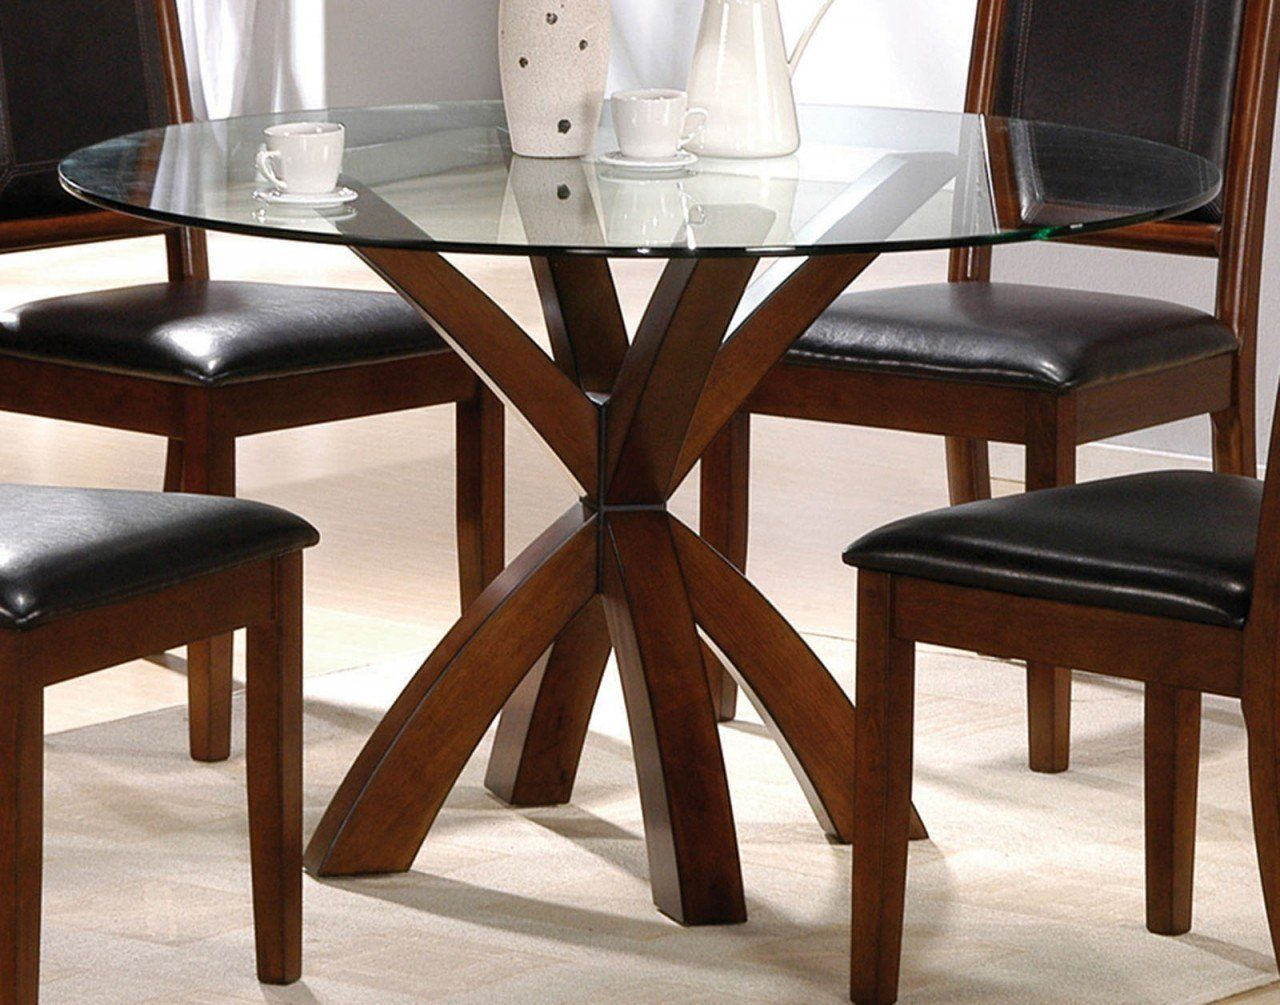 Dining room simple round glass top tables with wood base and table sets modern tops